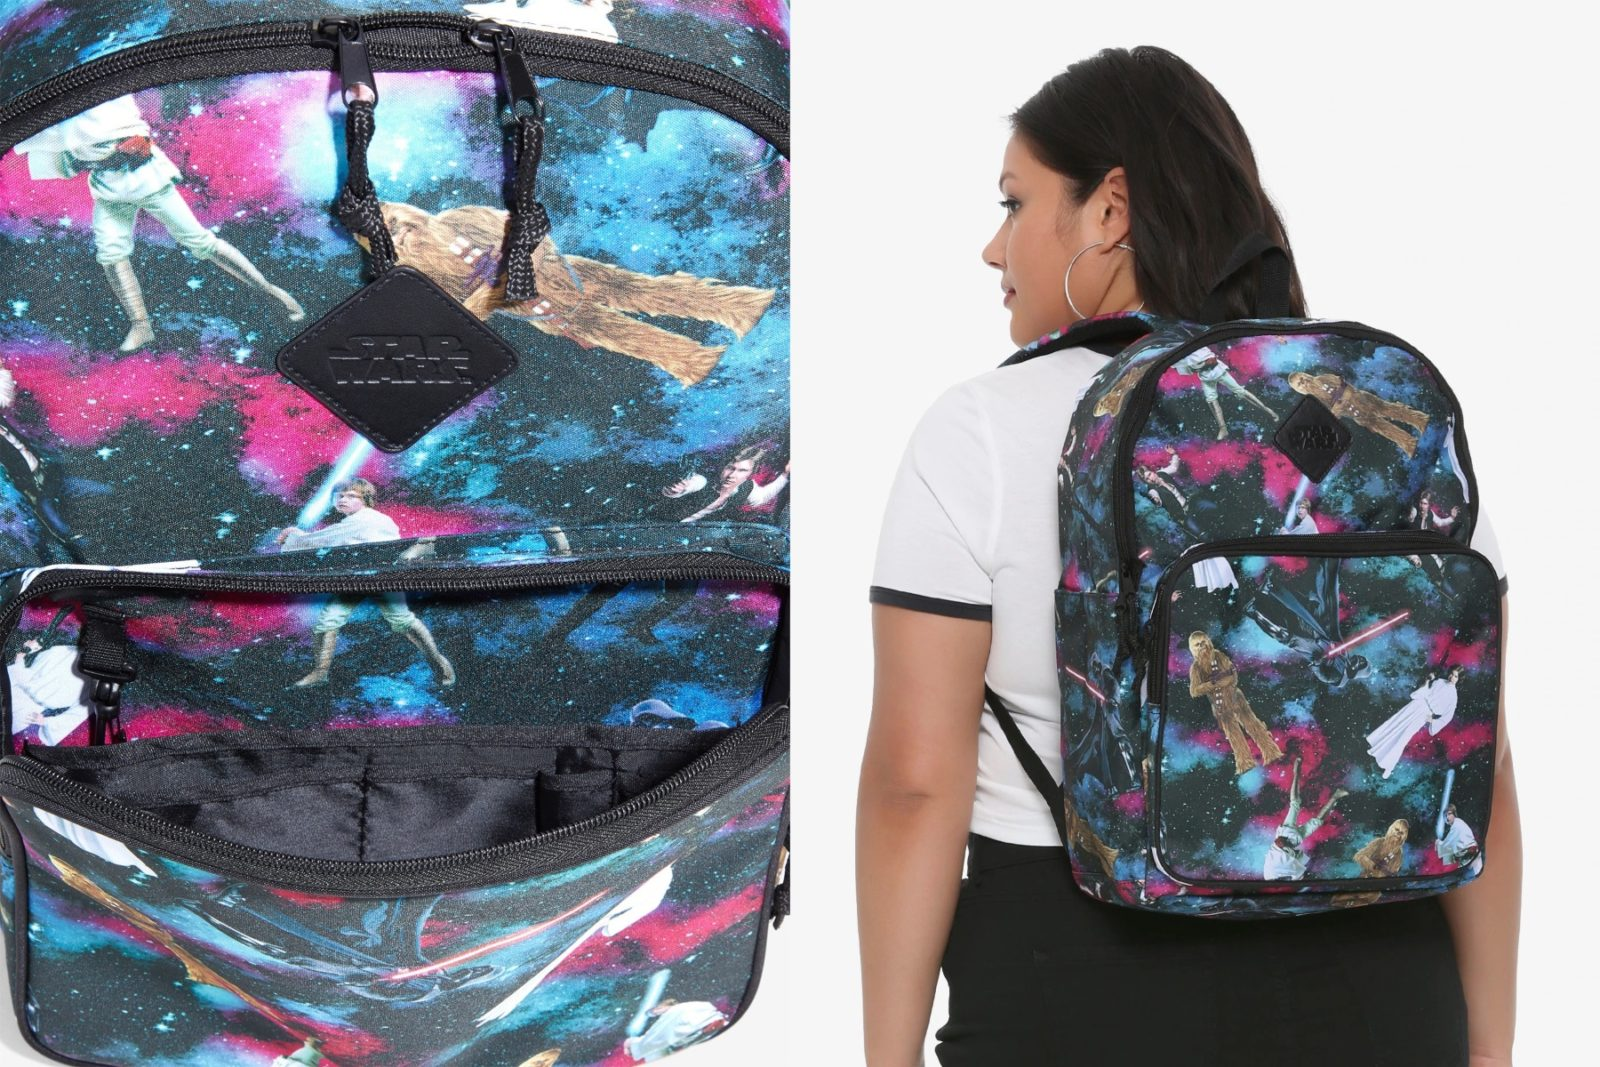 Star Wars Character Galaxy Backpack On Sale